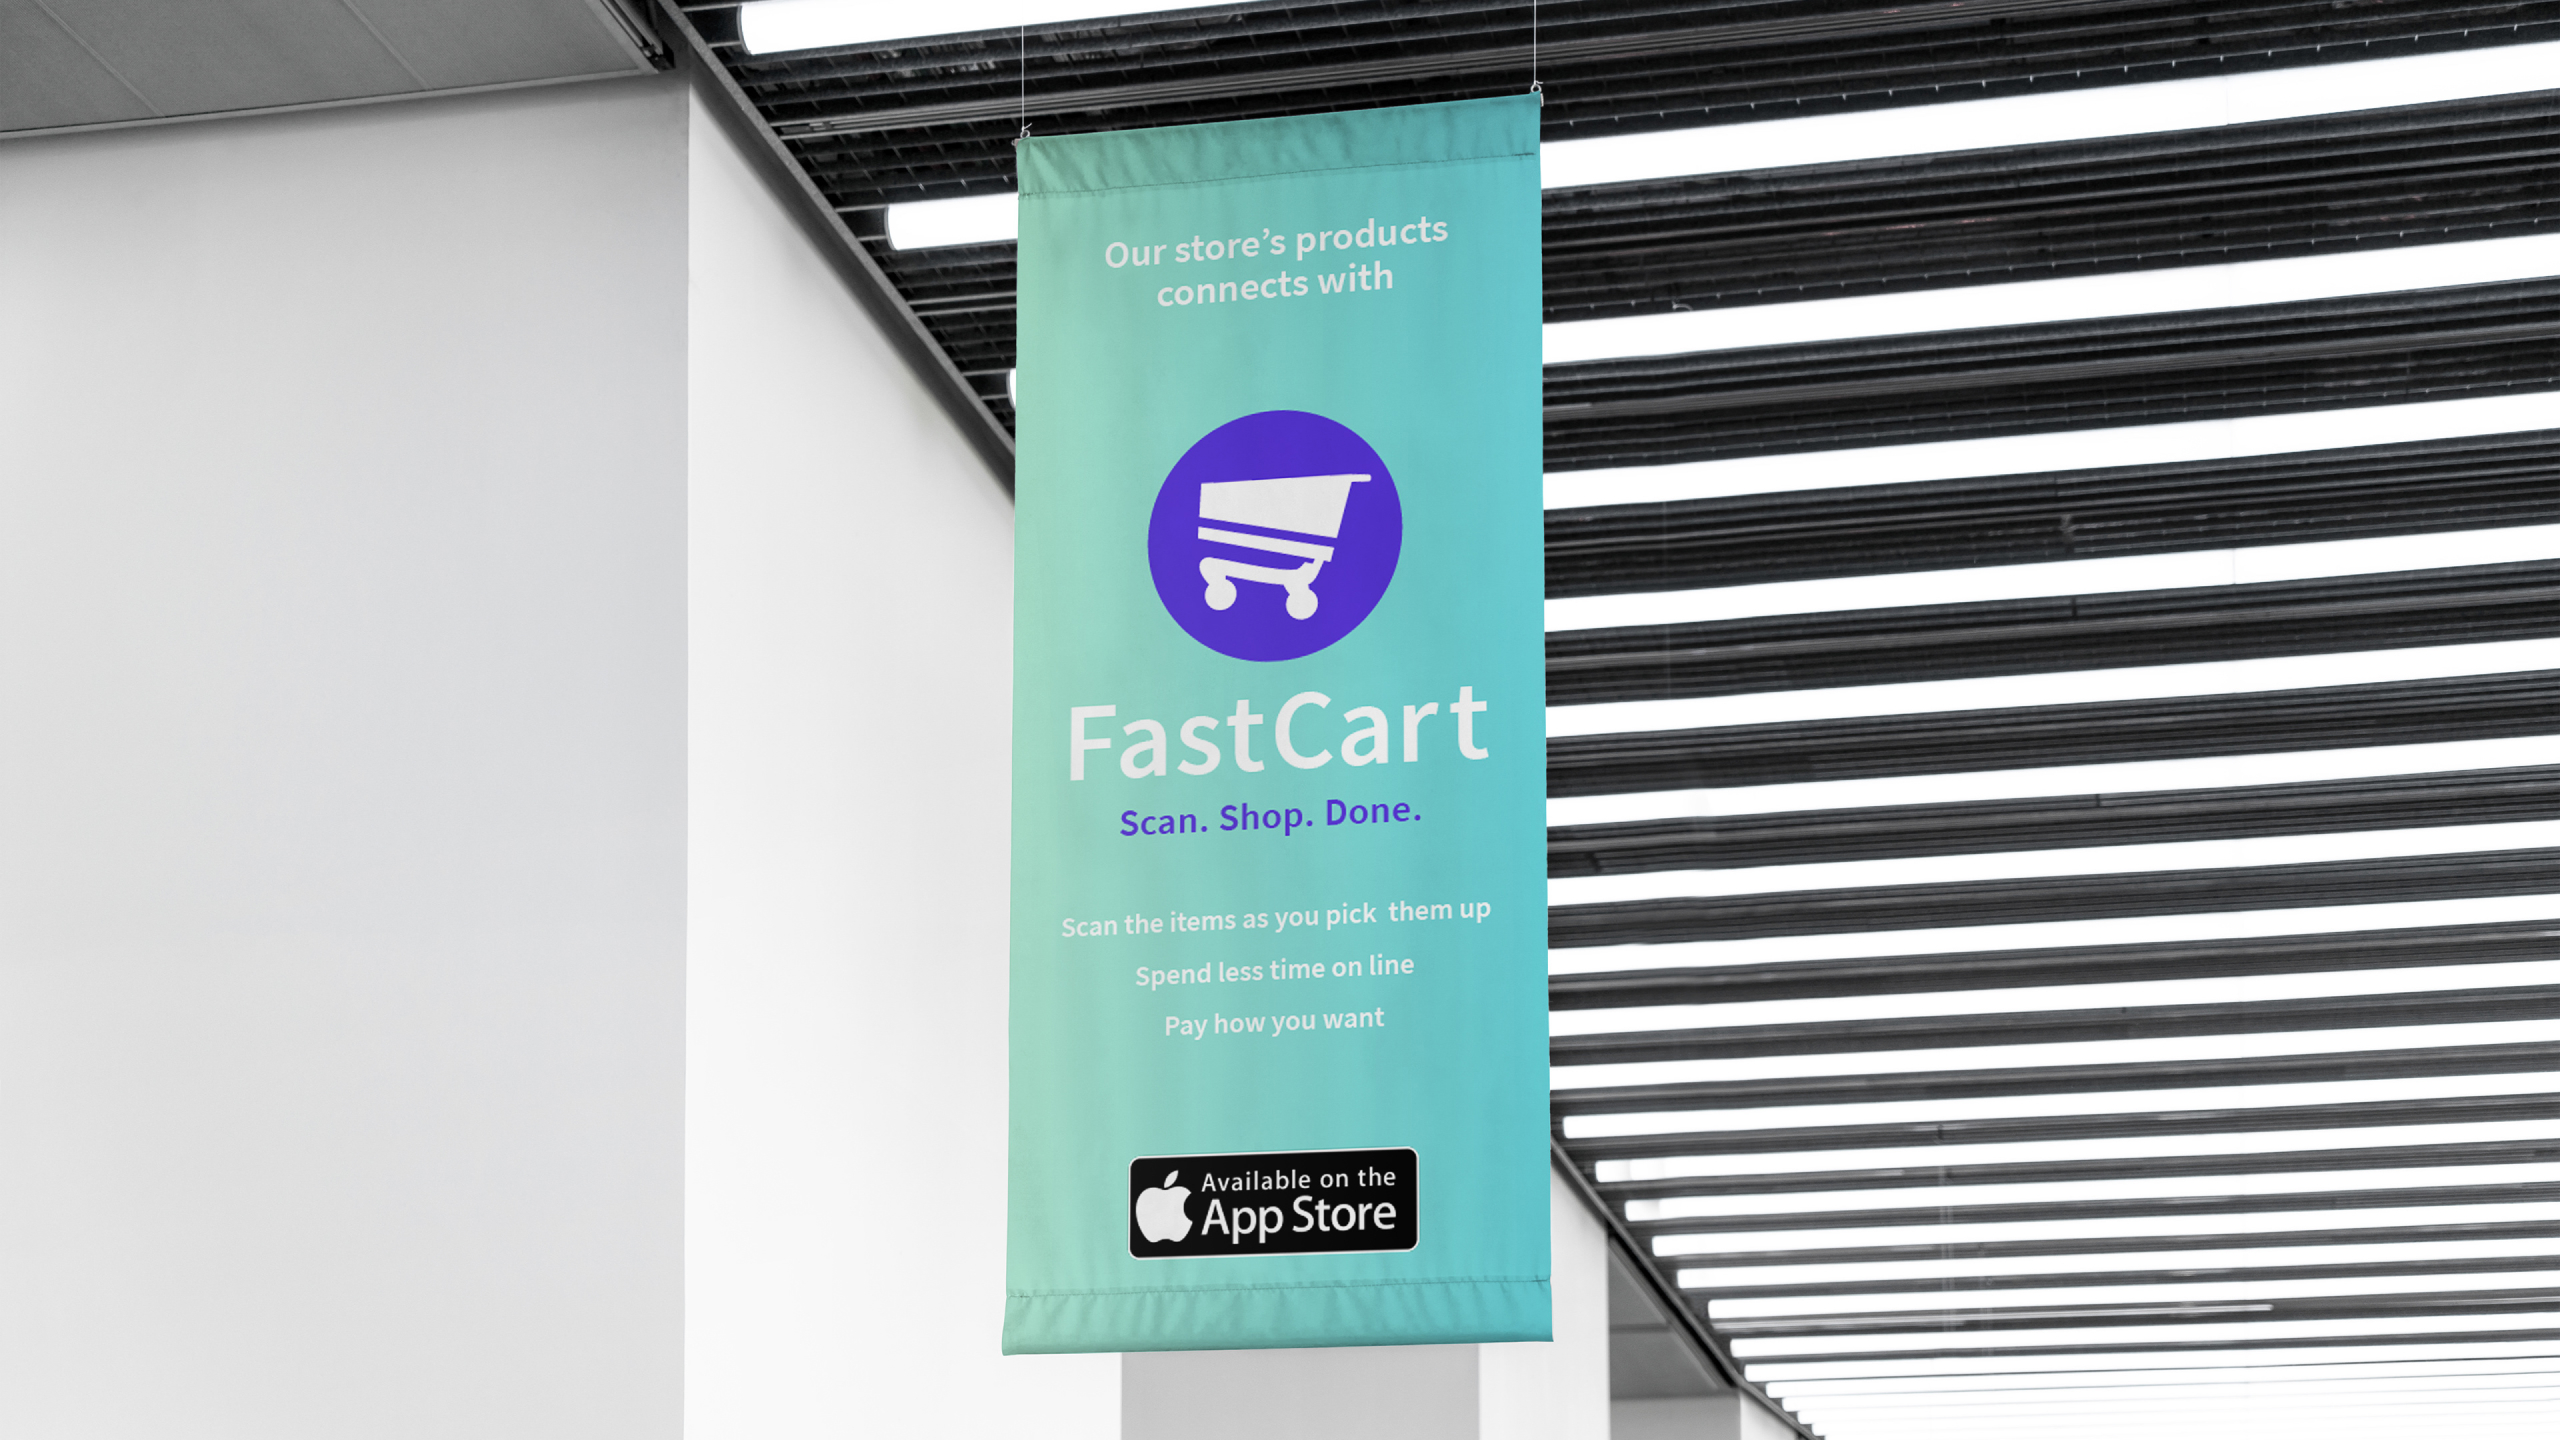 Fast Cart banner hanging from the ceiling in a store